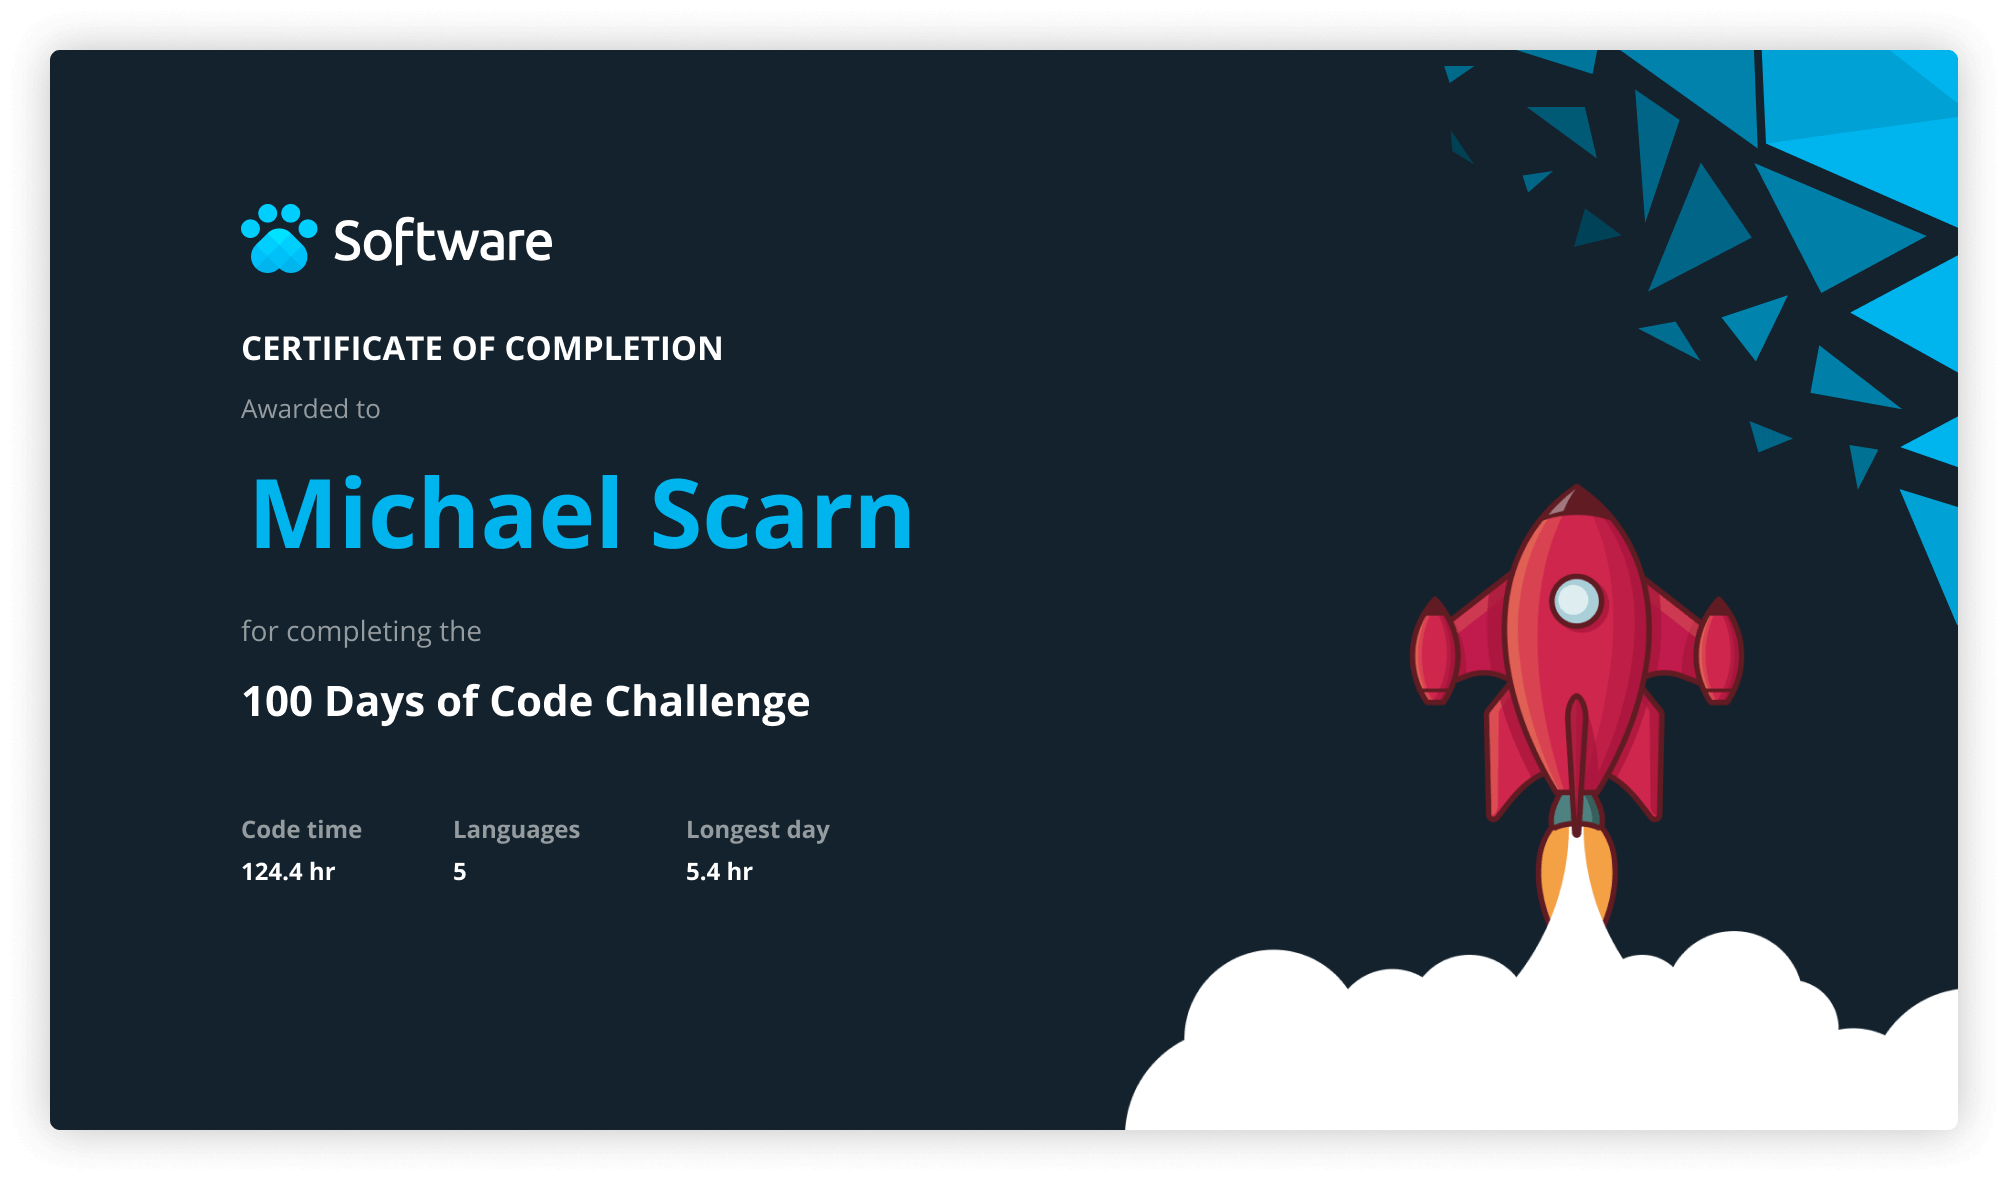 Software's 100 Days of Code certificate